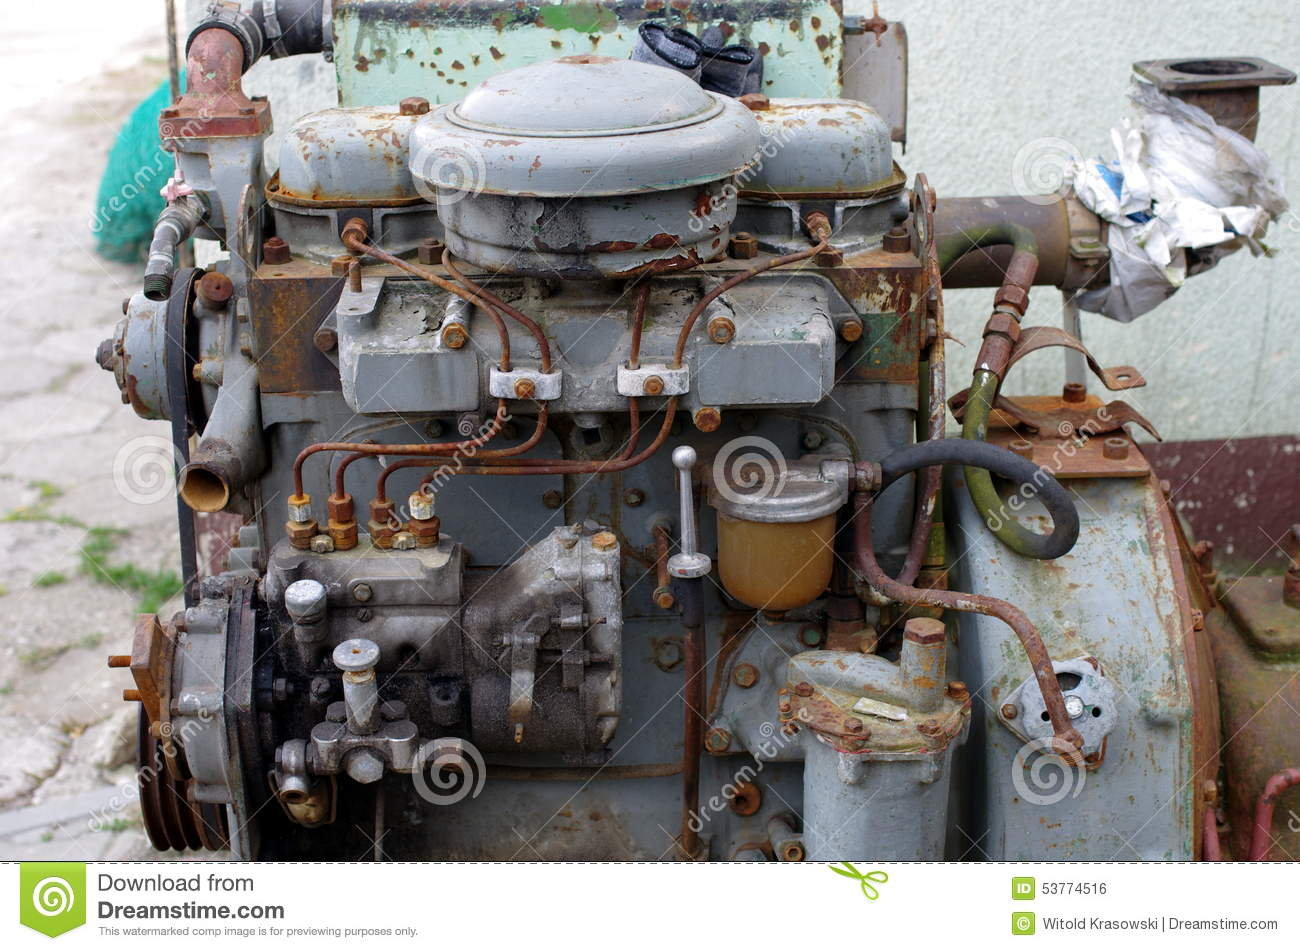 Click image for larger version  Name:old-engine-rusty-diesel-pump-53774516.jpg Views:98 Size:173.8 KB ID:125383